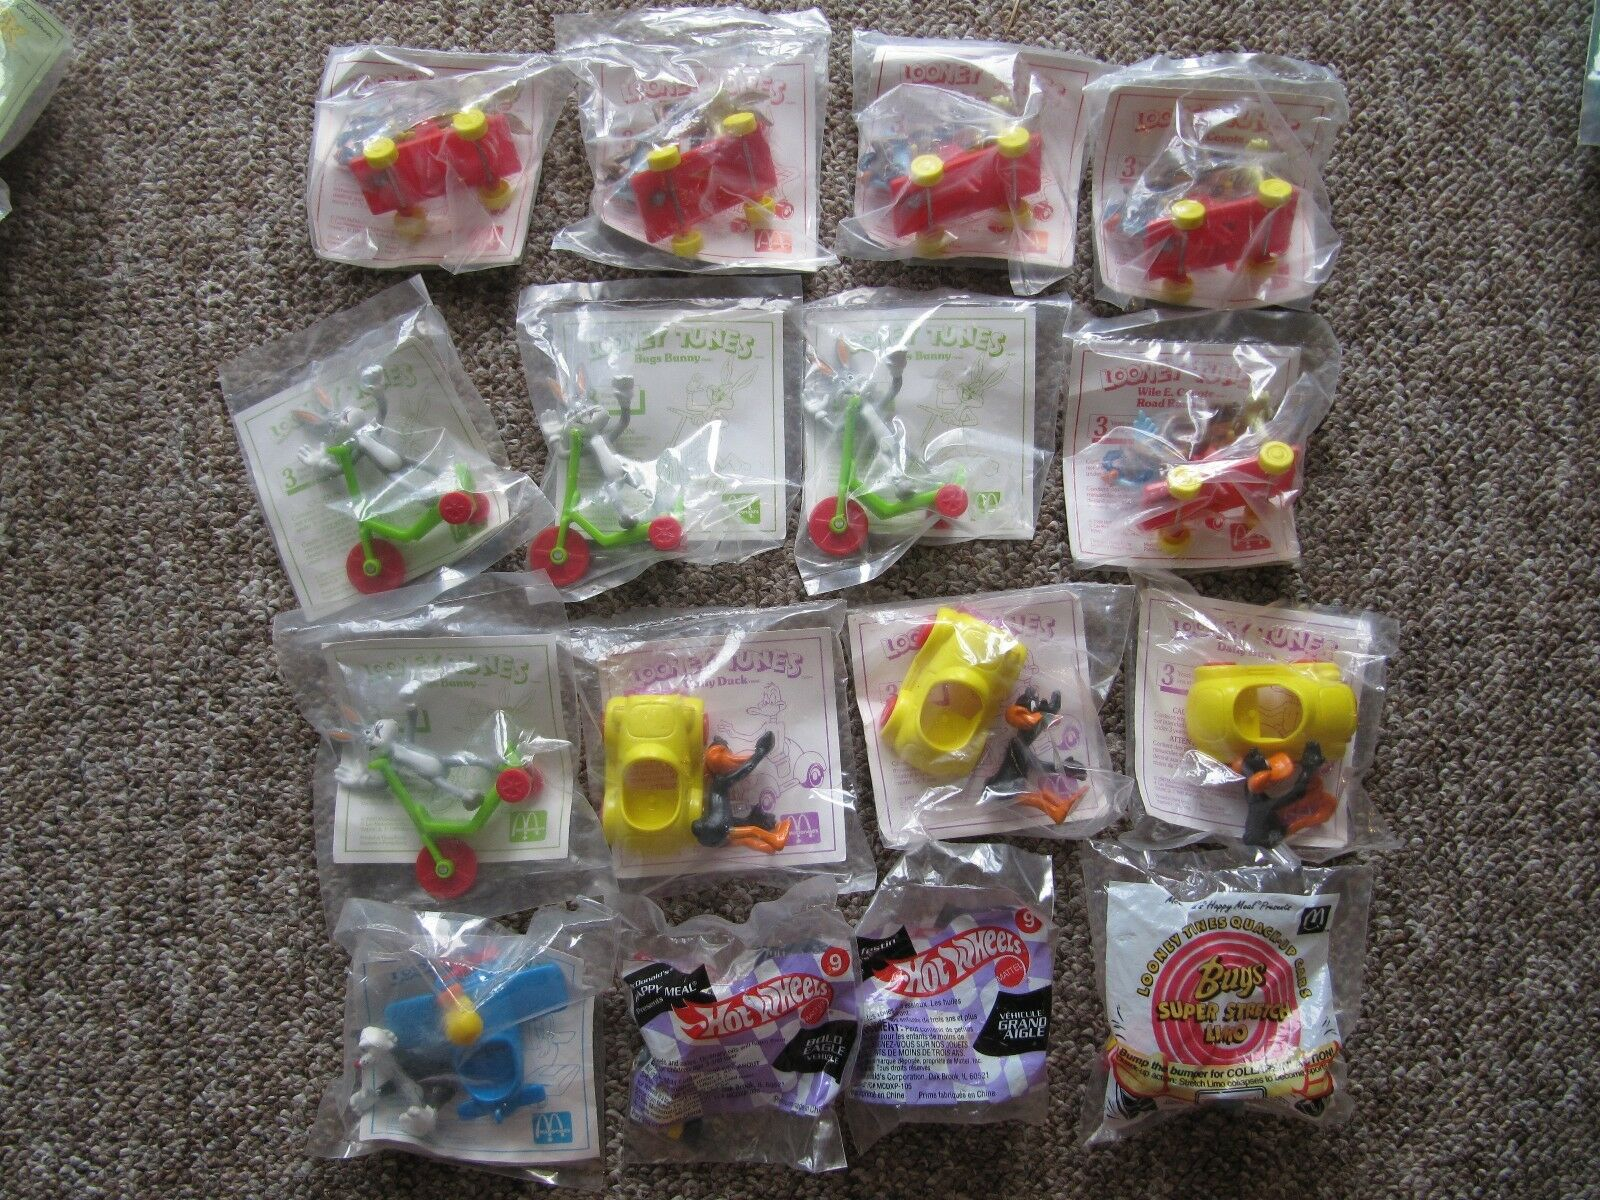 HUGE McDonalds Collection 1984-1993.  Toys, Happy Meals, coupons, CANADIAN